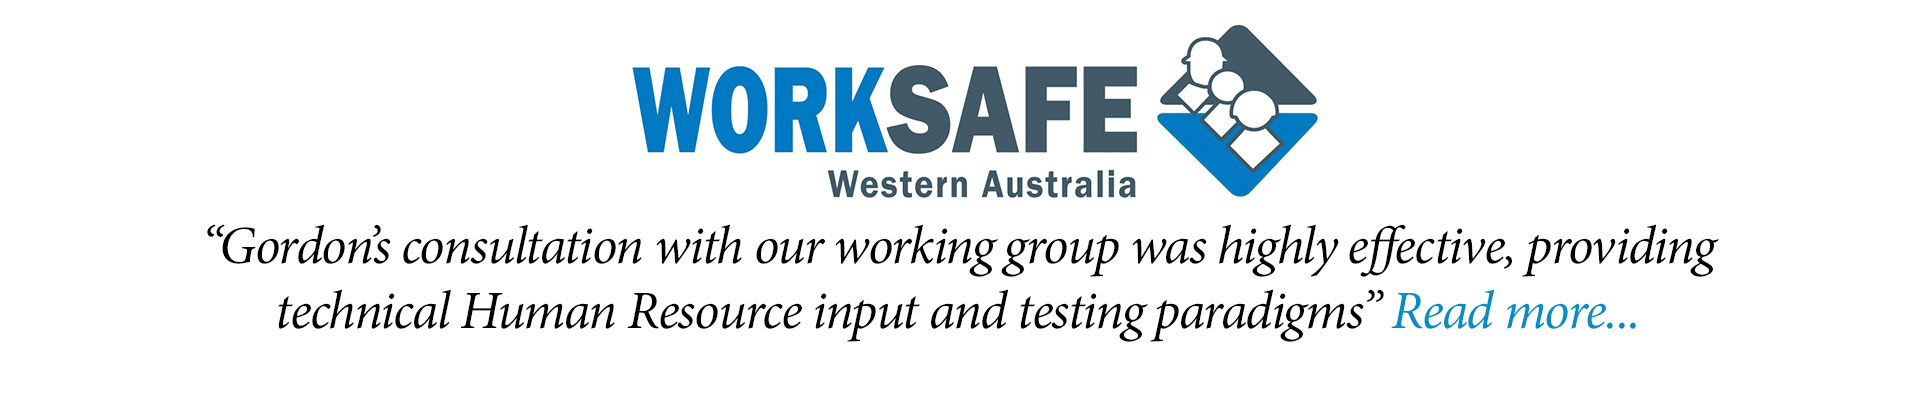 Worksafe.jpg